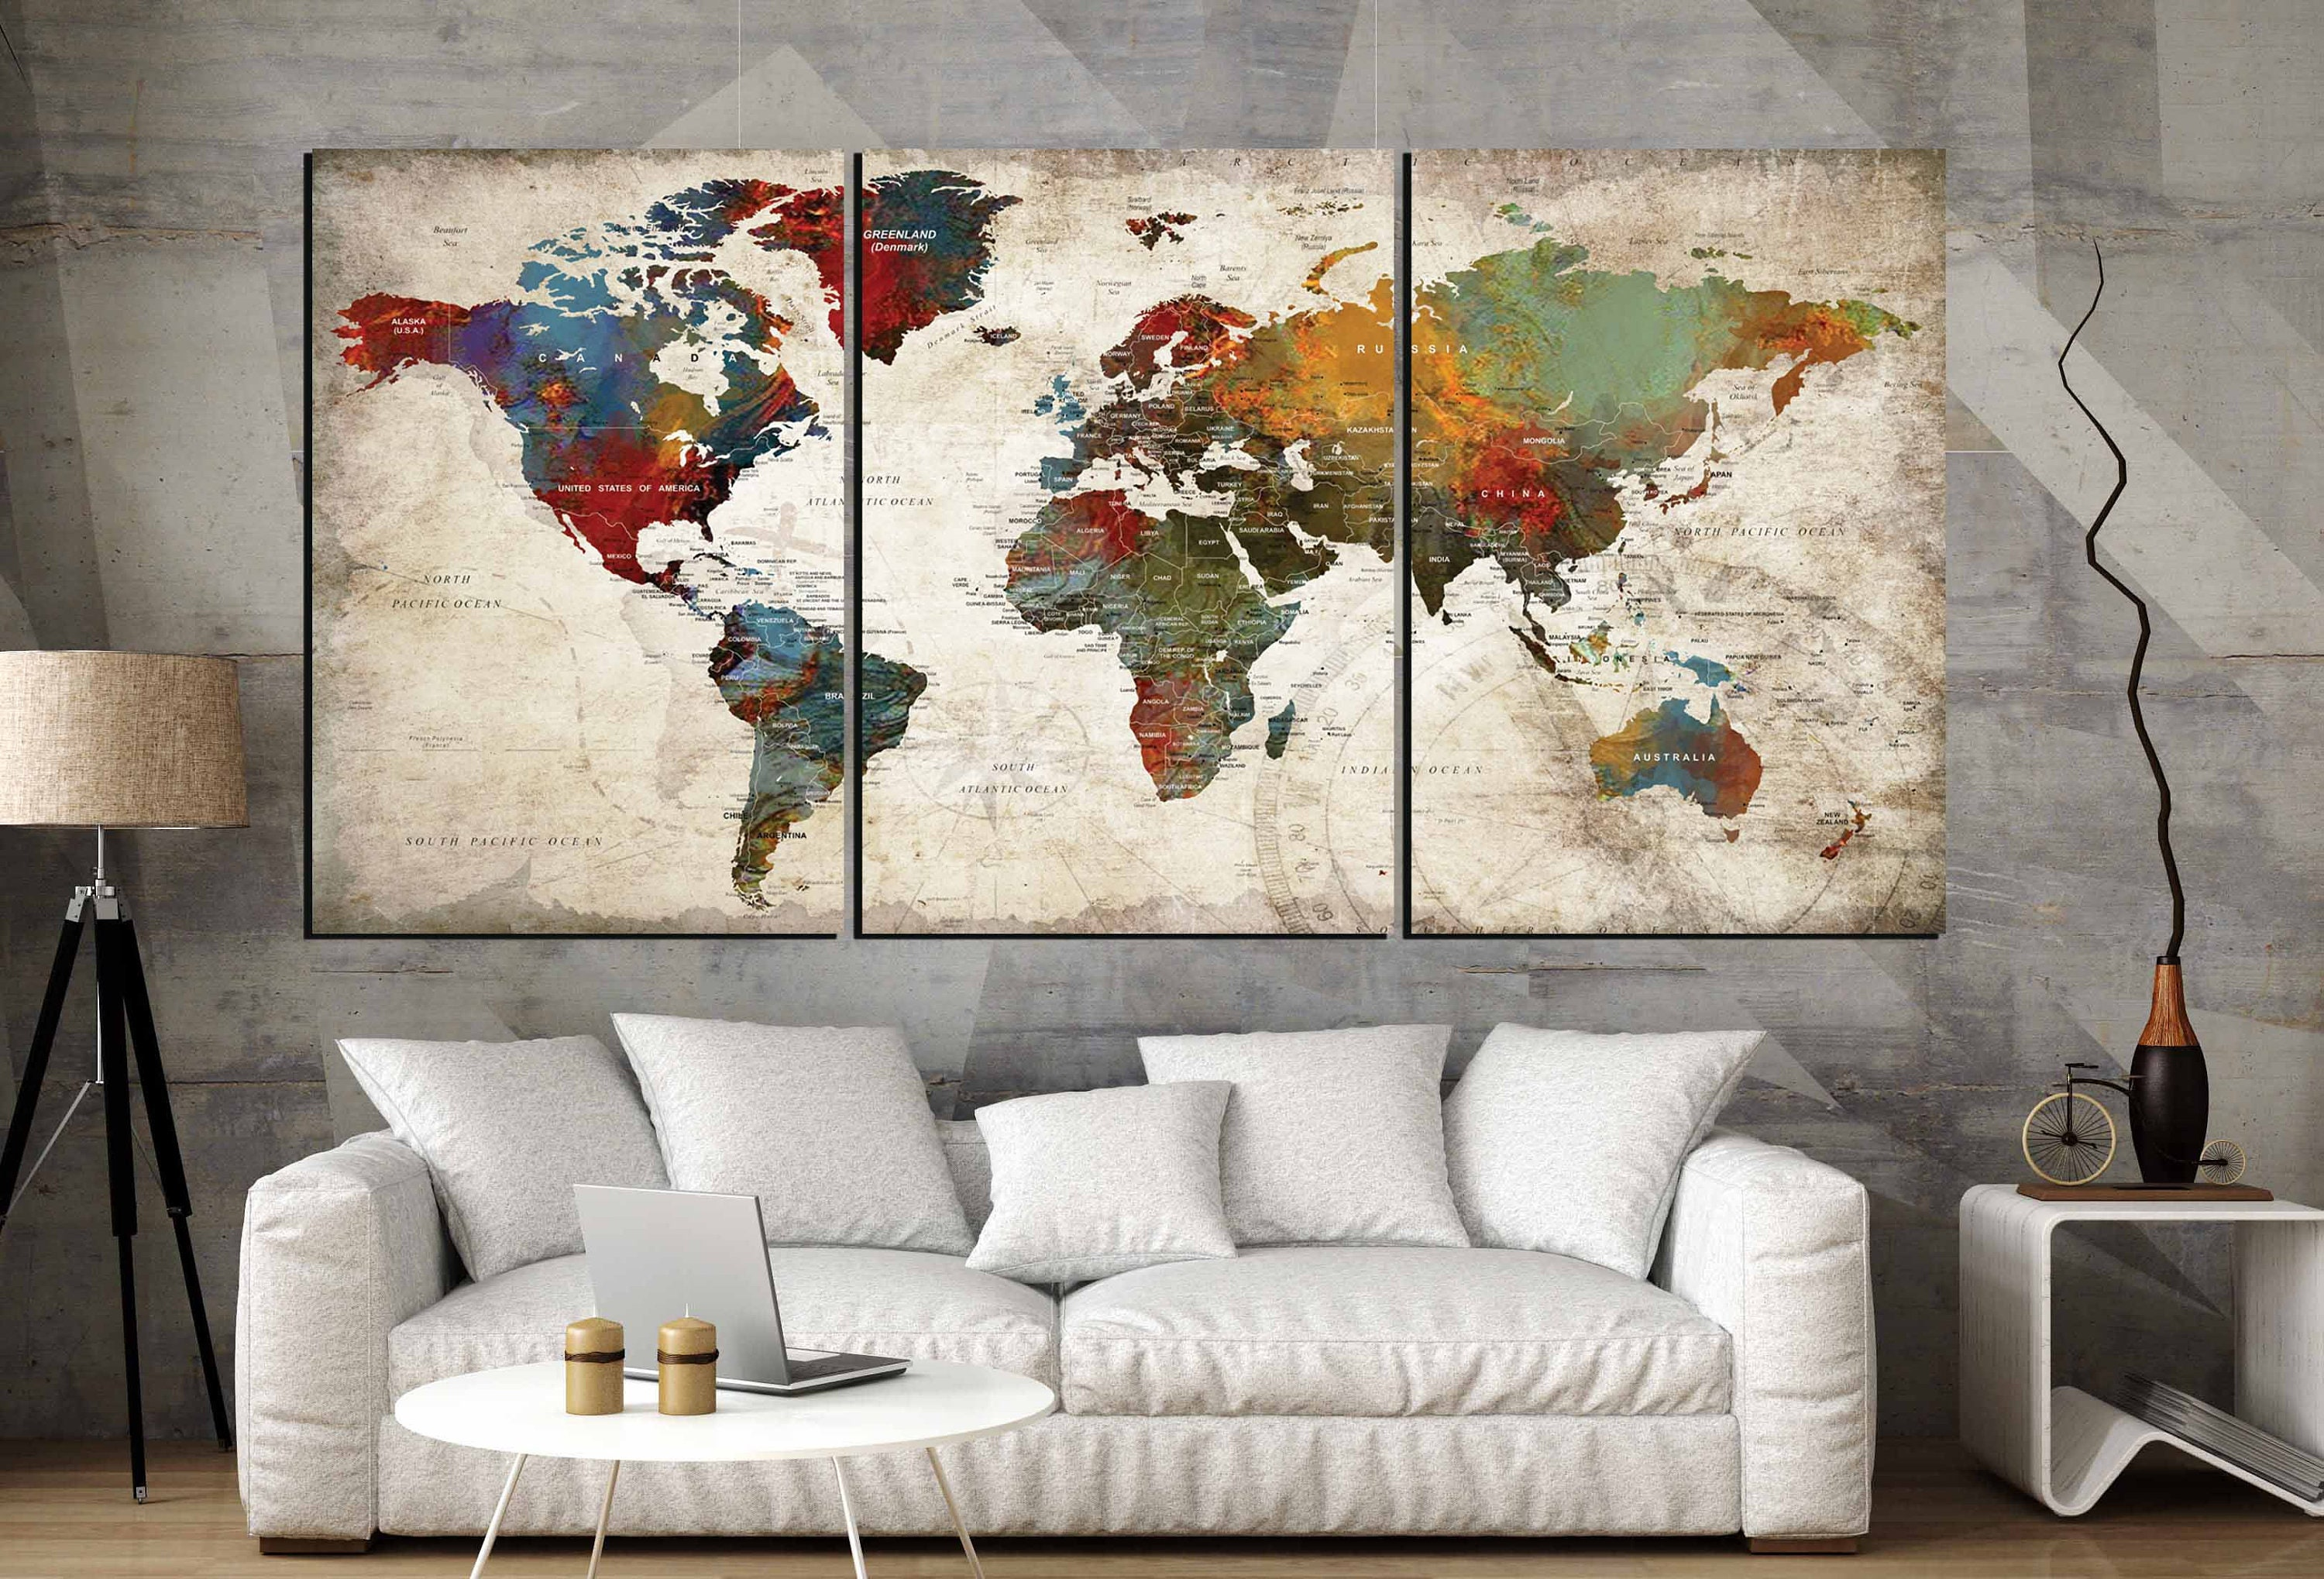 World map wall art 3 panel canvas artworld map large canvas panels world map wall art 3 panel canvas artworld map large canvas panelsworld map artworld map canvasworld map abstract artworld map push pin gumiabroncs Images